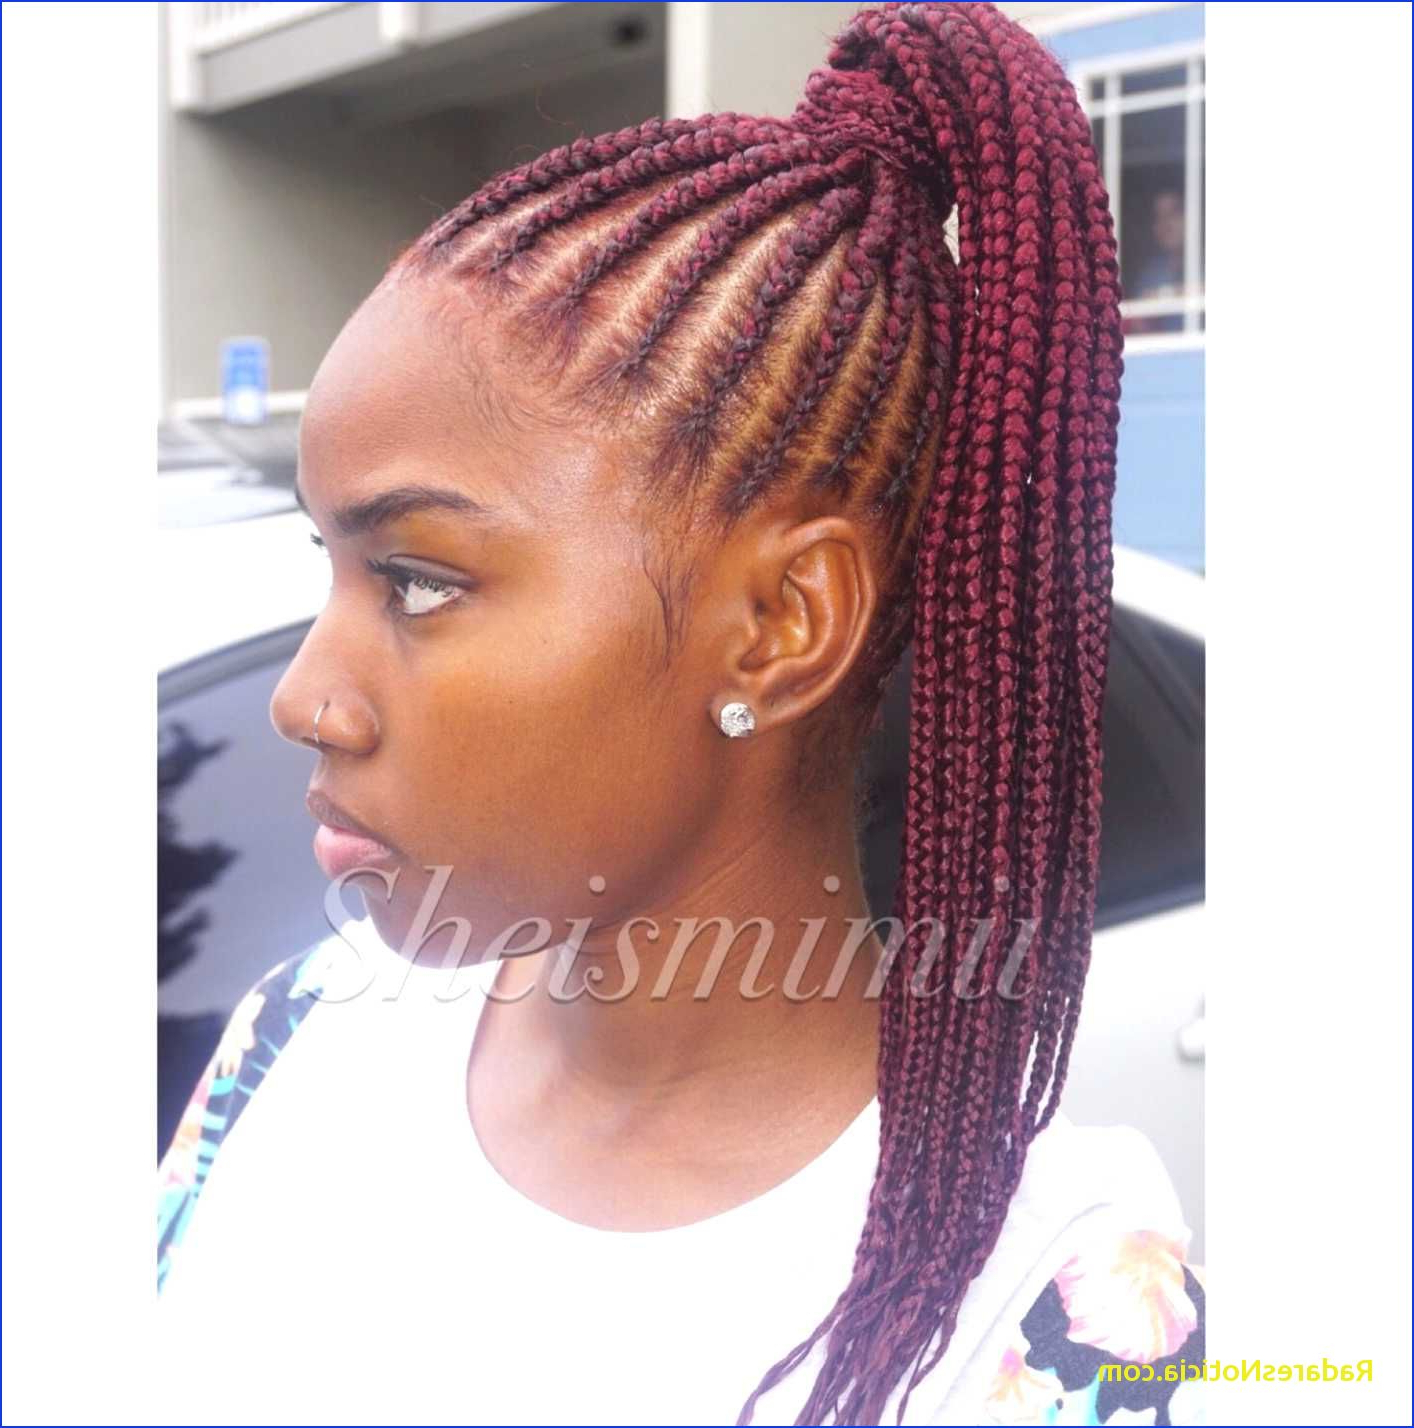 Braided Mohawk Hairstyles Hairstyles W Braids Accessibilitefo Within Widely Used Braided Mohawk Hairstyles (View 5 of 20)